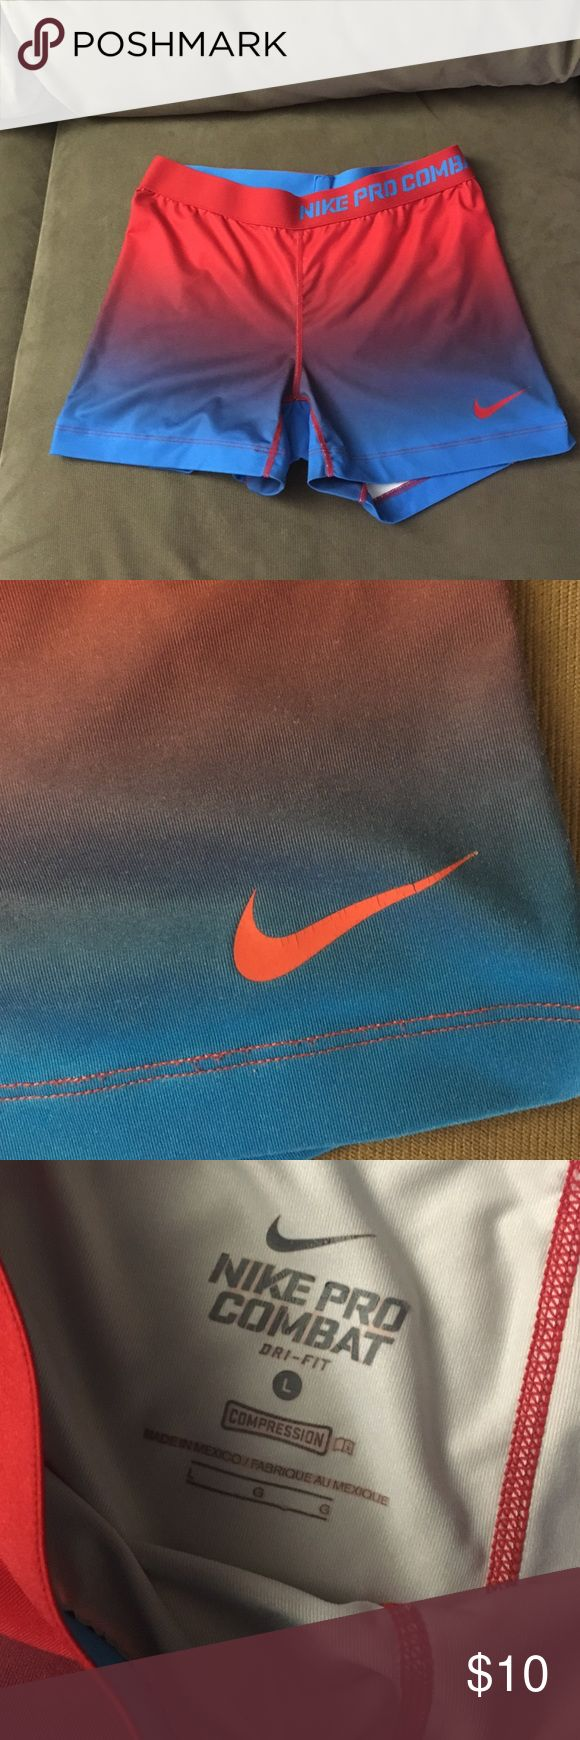 Nike Pro Combat Shorts Size Large Great condition. The swoosh has cracking as shown in pictures. Cute ombré color. Lowest offer is the price listed. No trades or Mercari. Price firm unless bundled. Nike Shorts